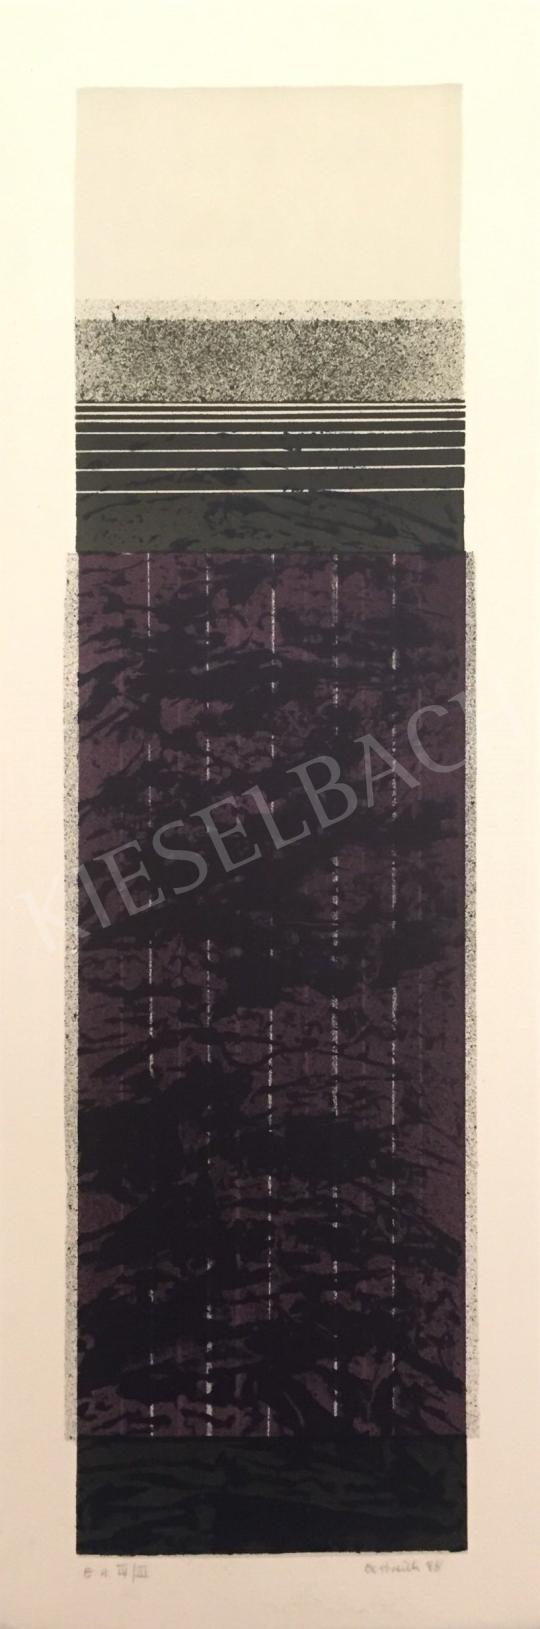 For sale  Unknown Artist with Oestreich Signature - Grey Liliac Composition, 1998 's painting